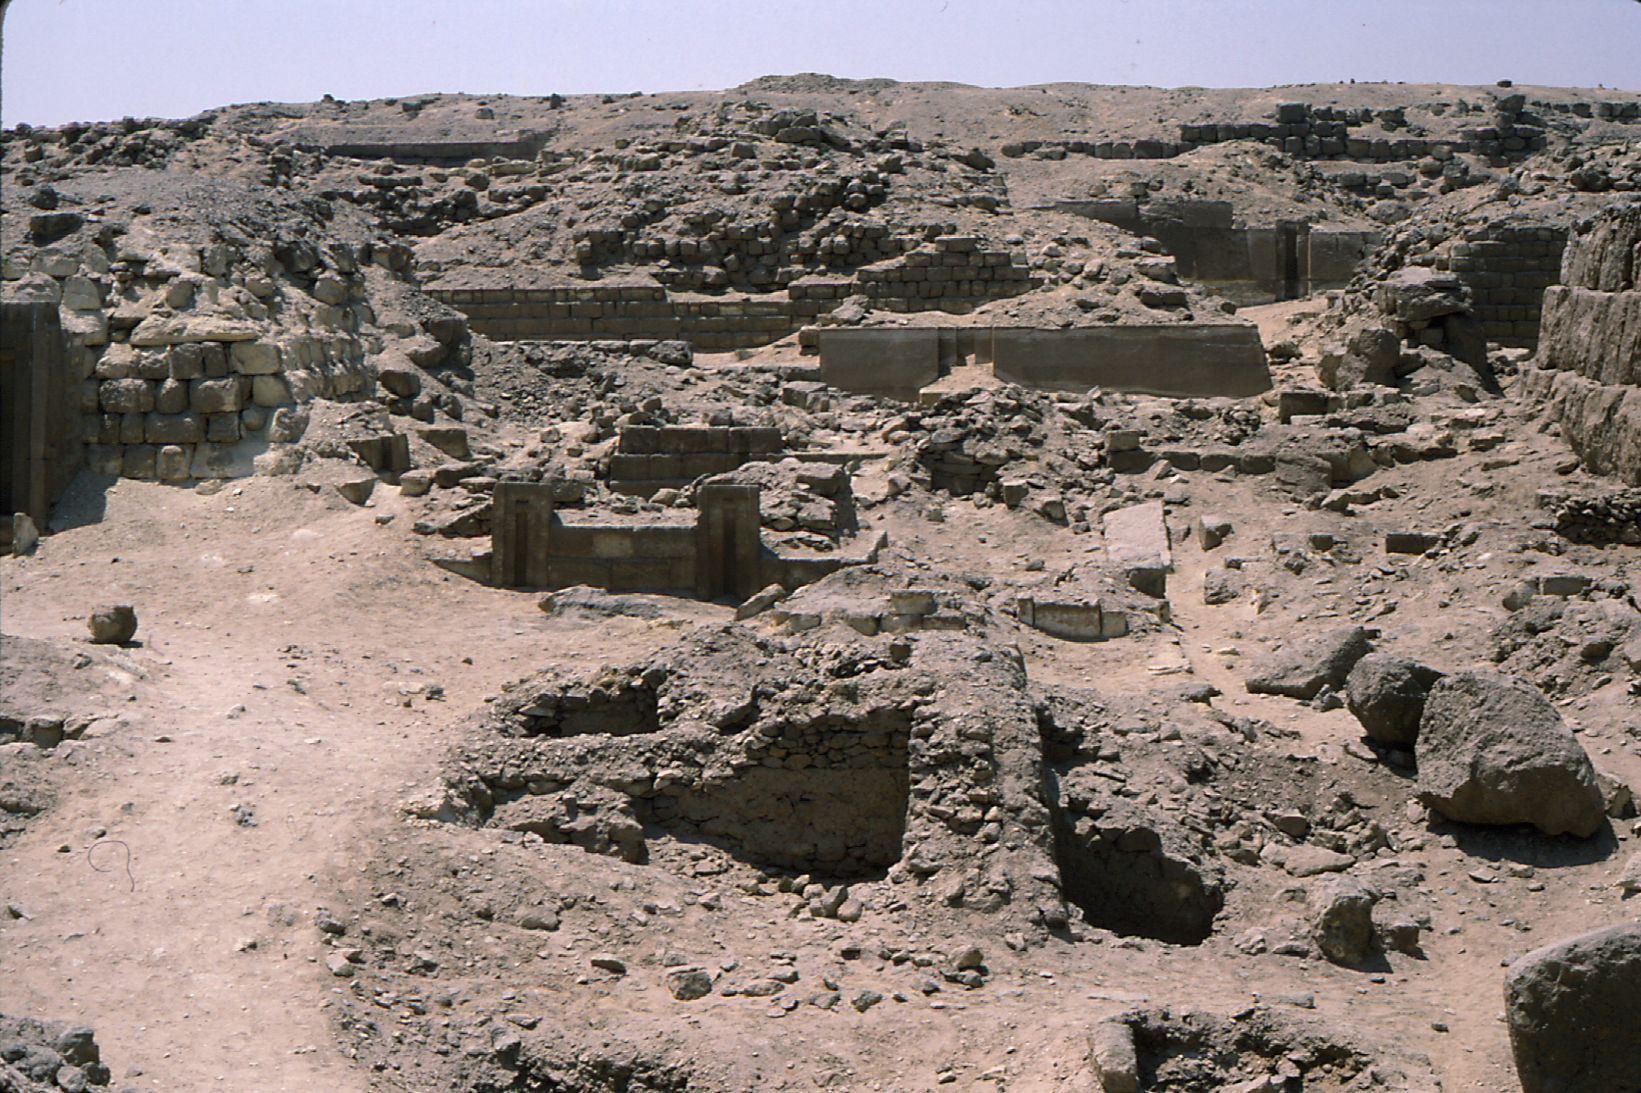 Western Cemetery: Site: Giza; View: G 2154, G 2154a, G 2153, G 2151, G 2152